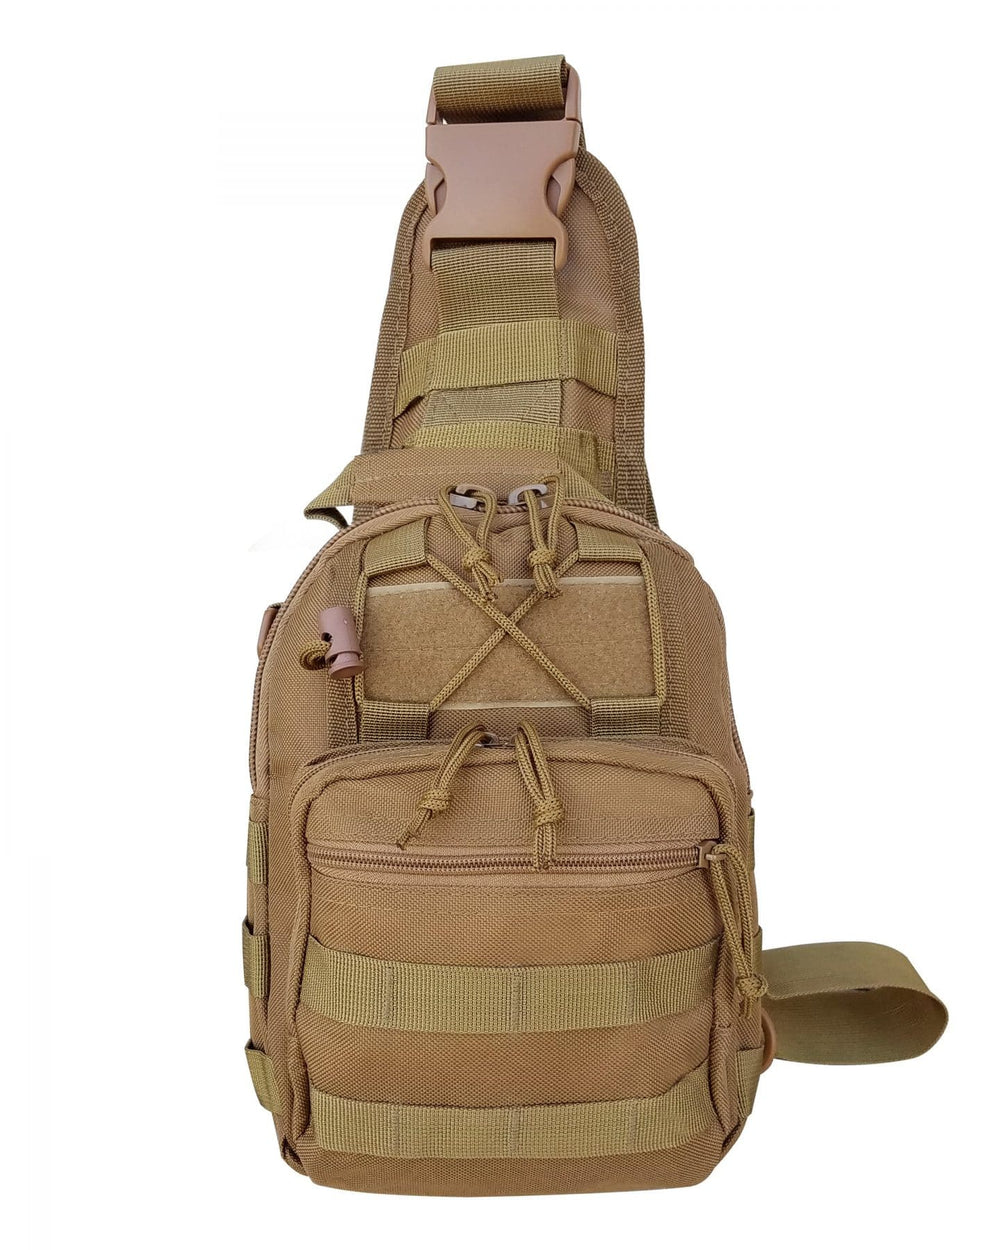 Tactical Concealed Carry Sling Bag